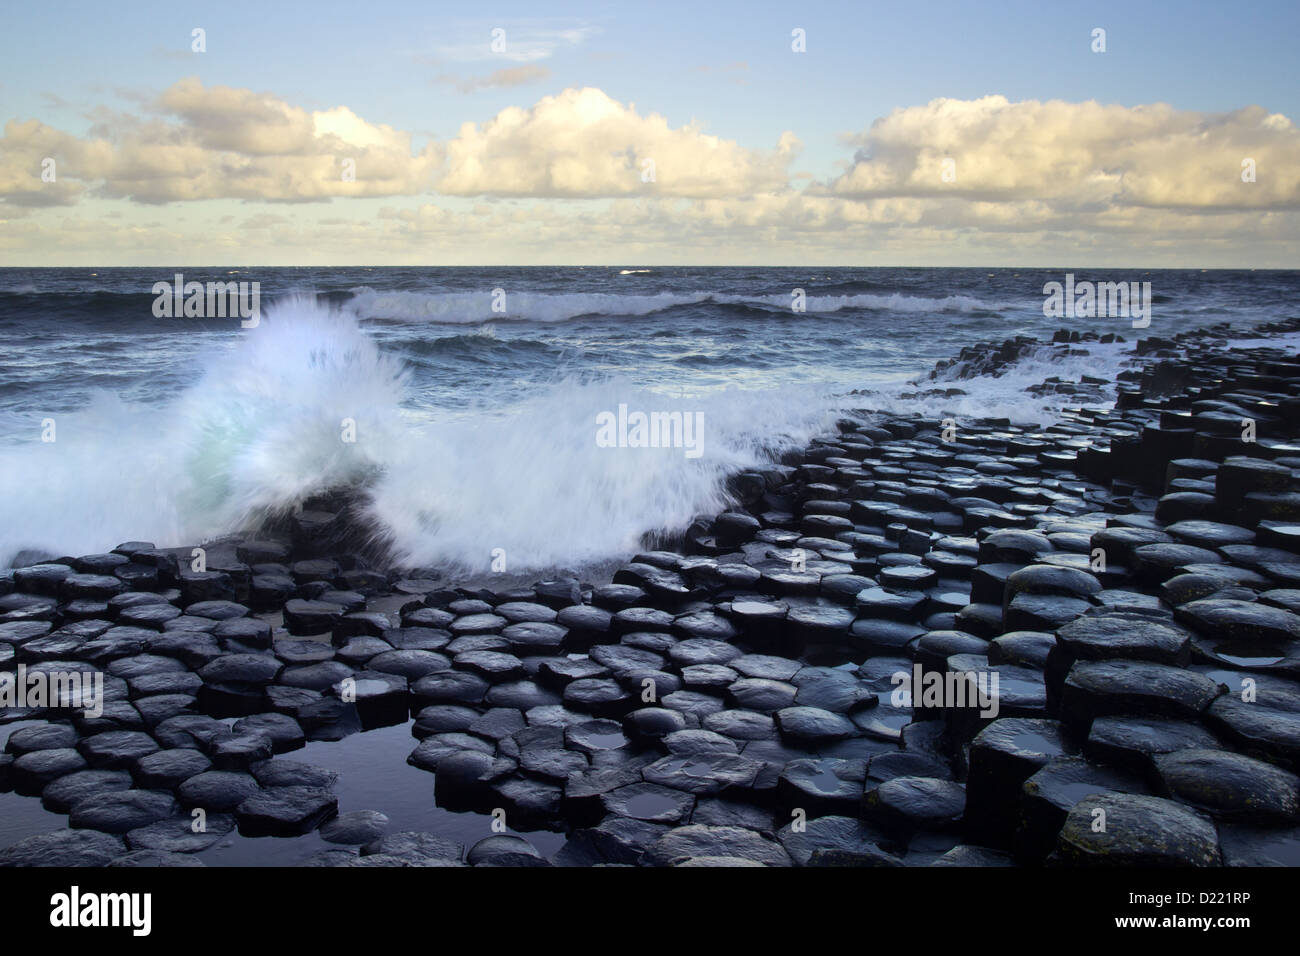 Waves splashing on the great hexagon stones of the Giant's Causeway from the Antrim coast, Northern Ireland. Stock Photo